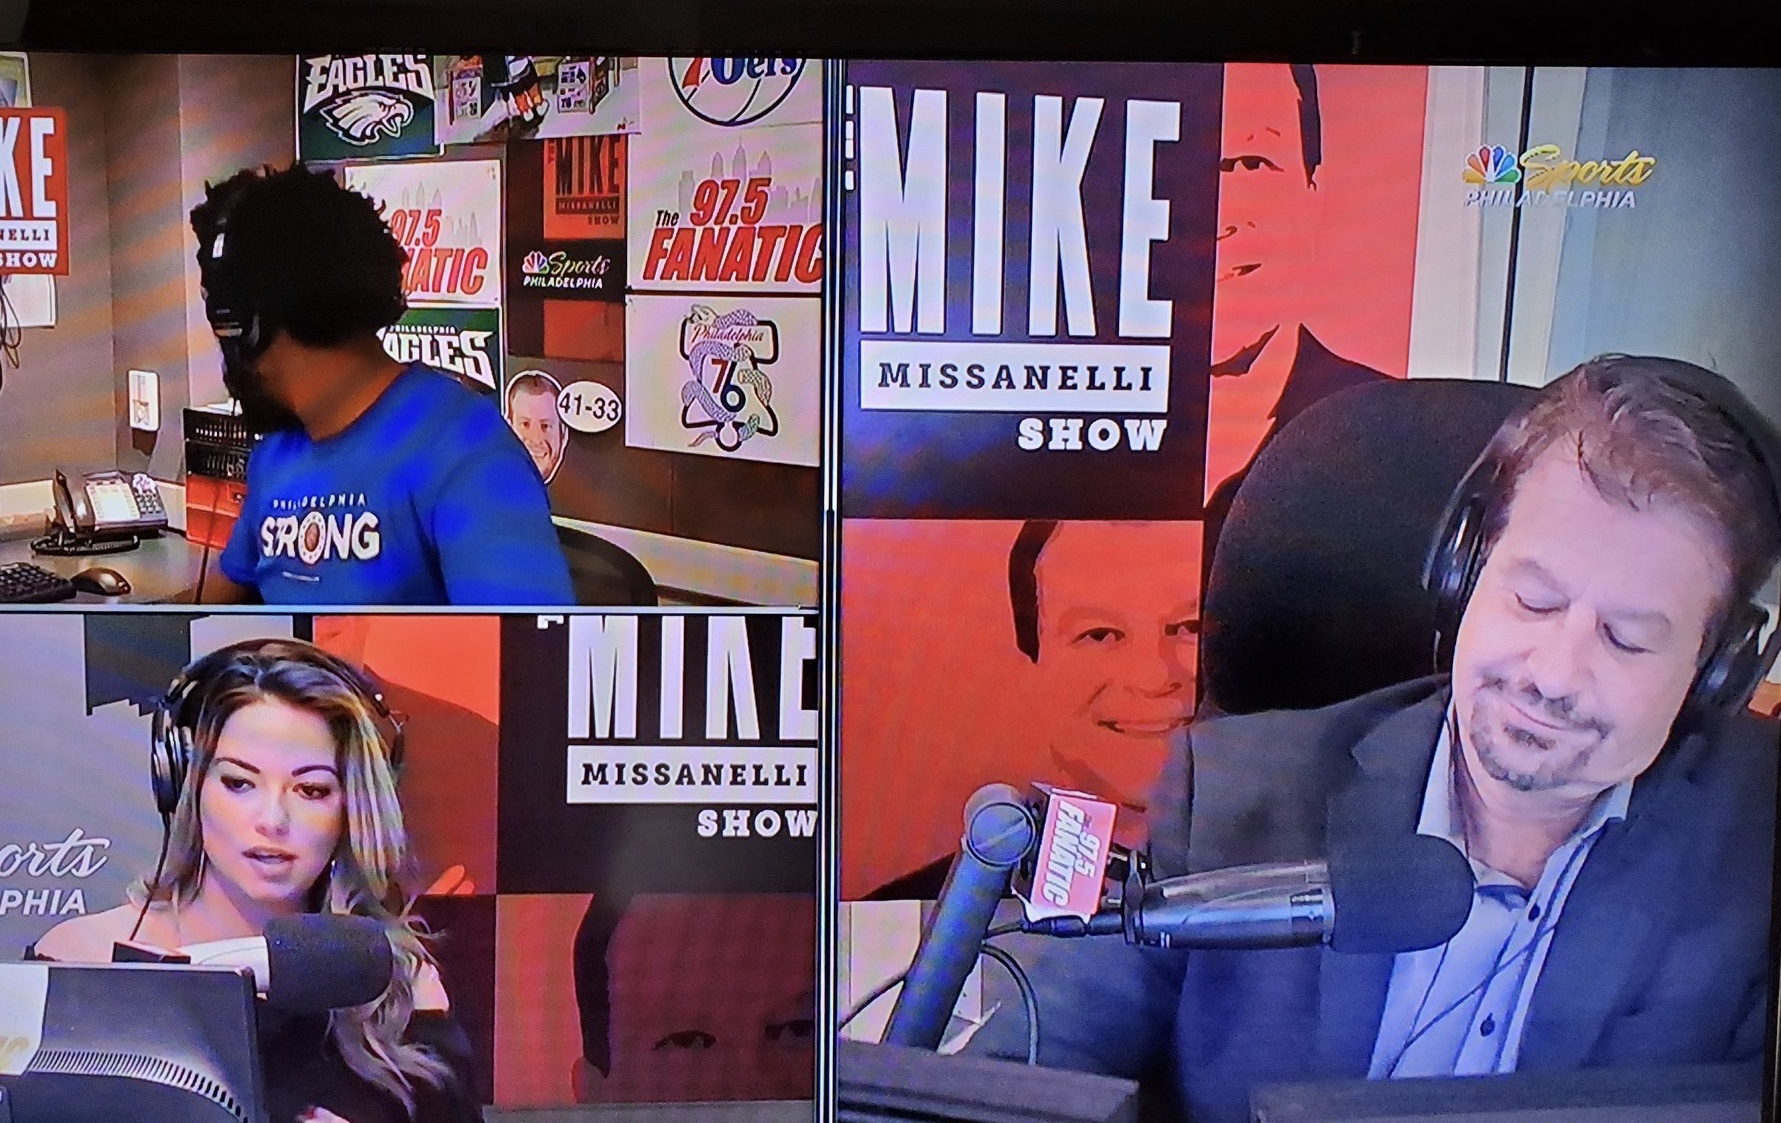 Mike Missanelli Gives a Heart Felt Apology Today On 97.5 The Fanatic